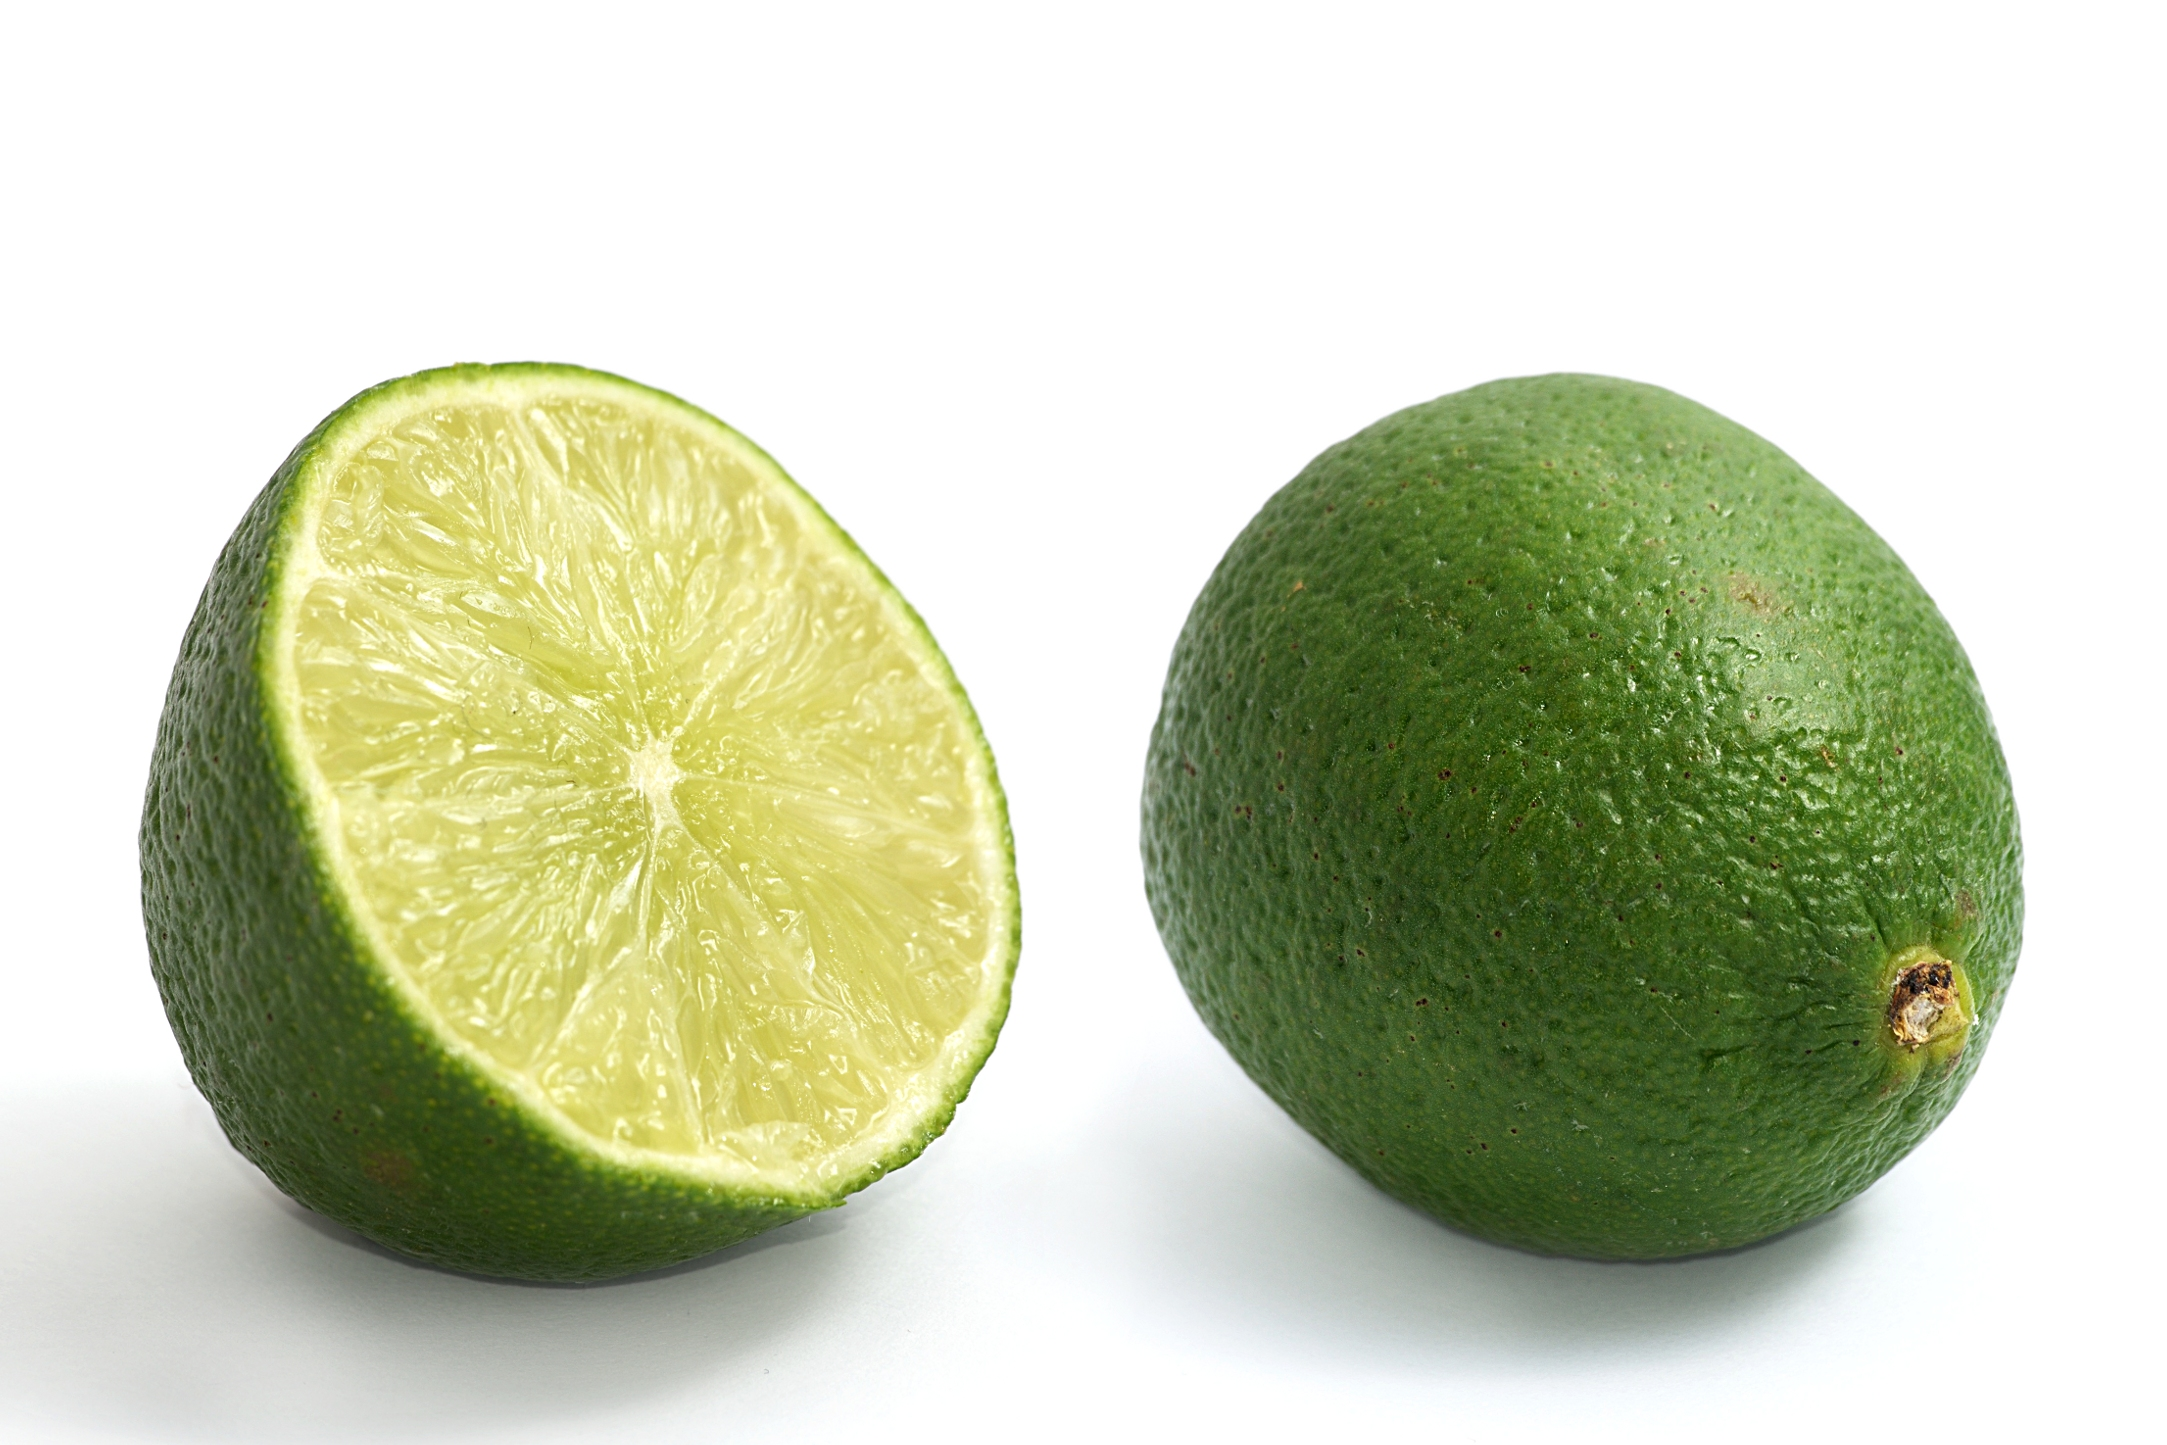 Limes_whole_and_halved.jpg